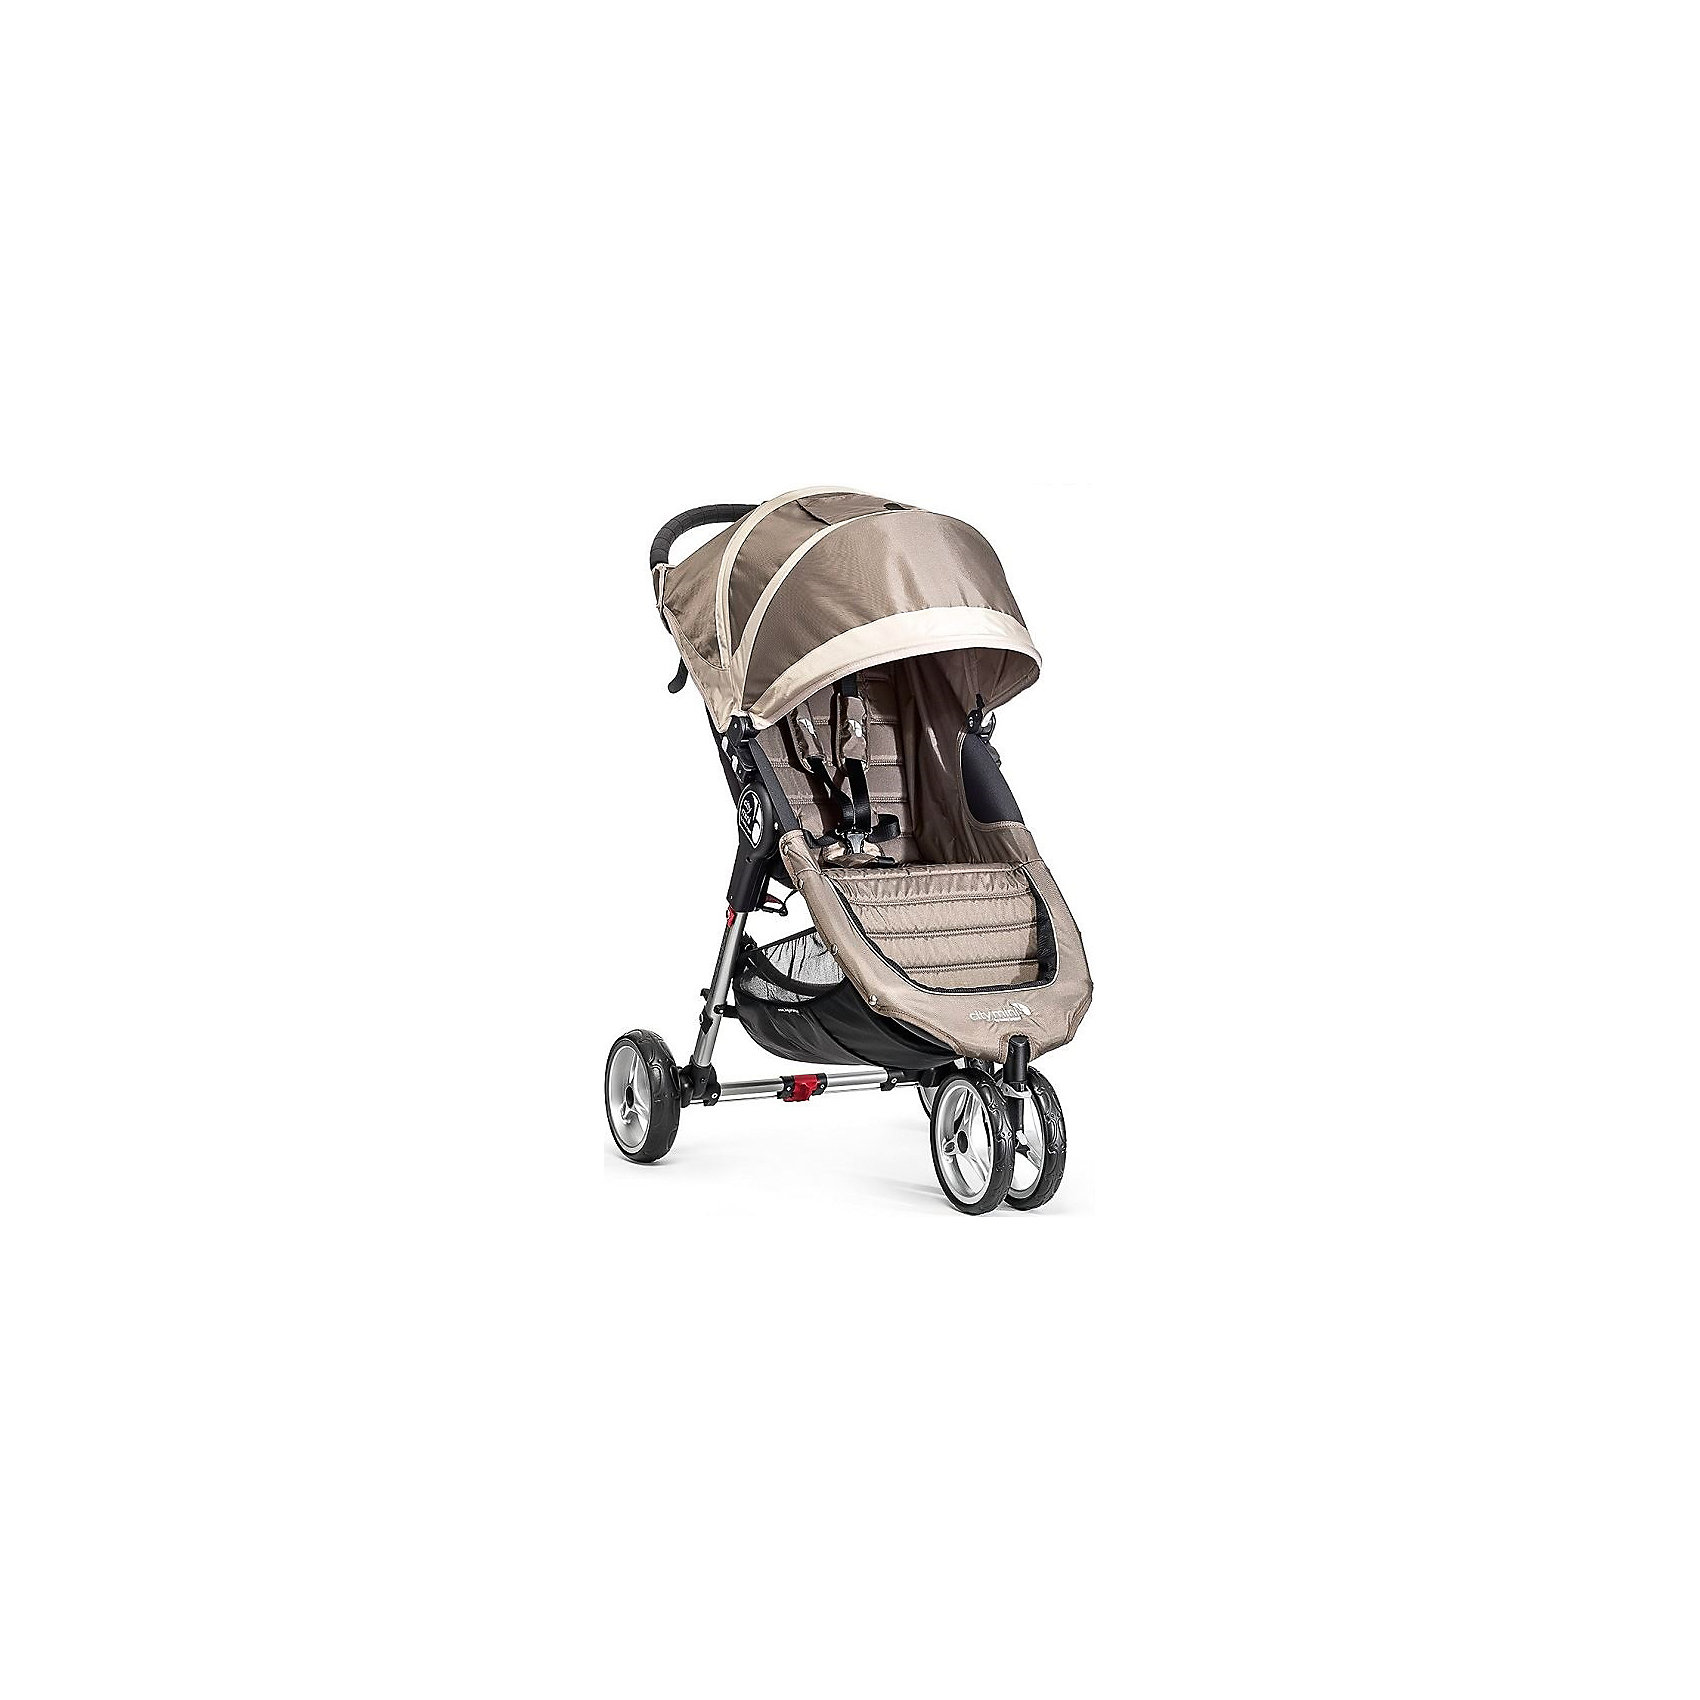 Baby Jogger Прогулочная коляска City Mini Single, Baby Jogger, песочно-серый прогулочная коляска cool baby kdd 6699gb t fuchsia light grey